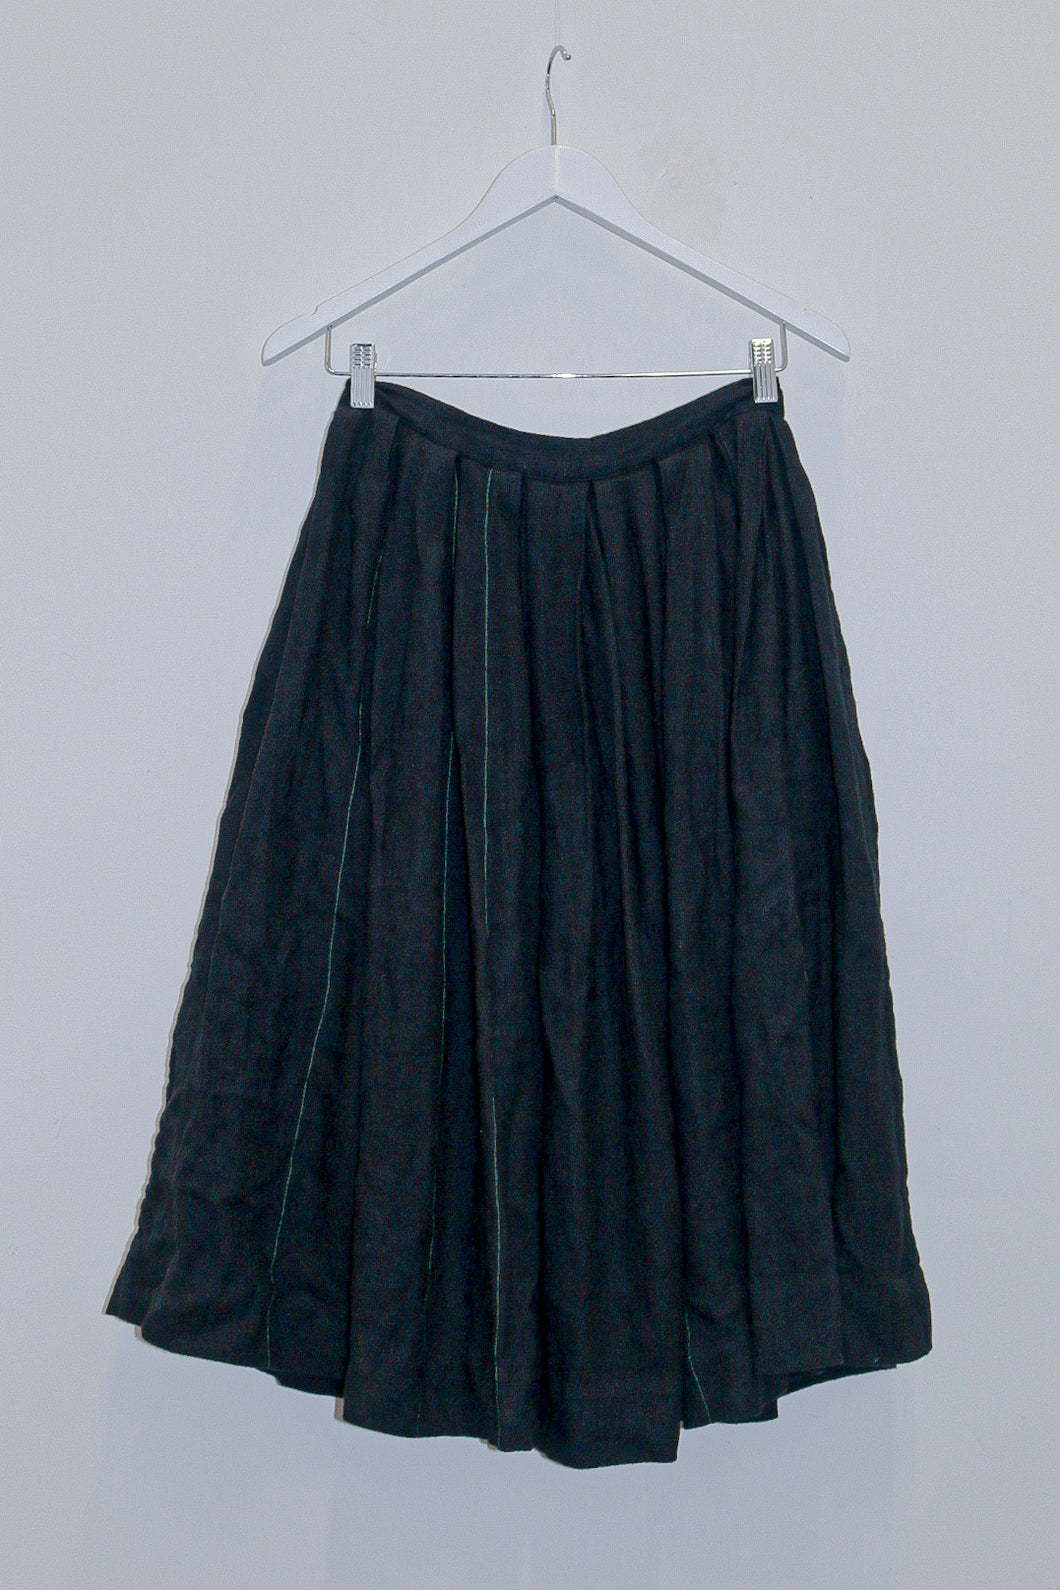 Vintage 1940's Woollen Pleated Skirt